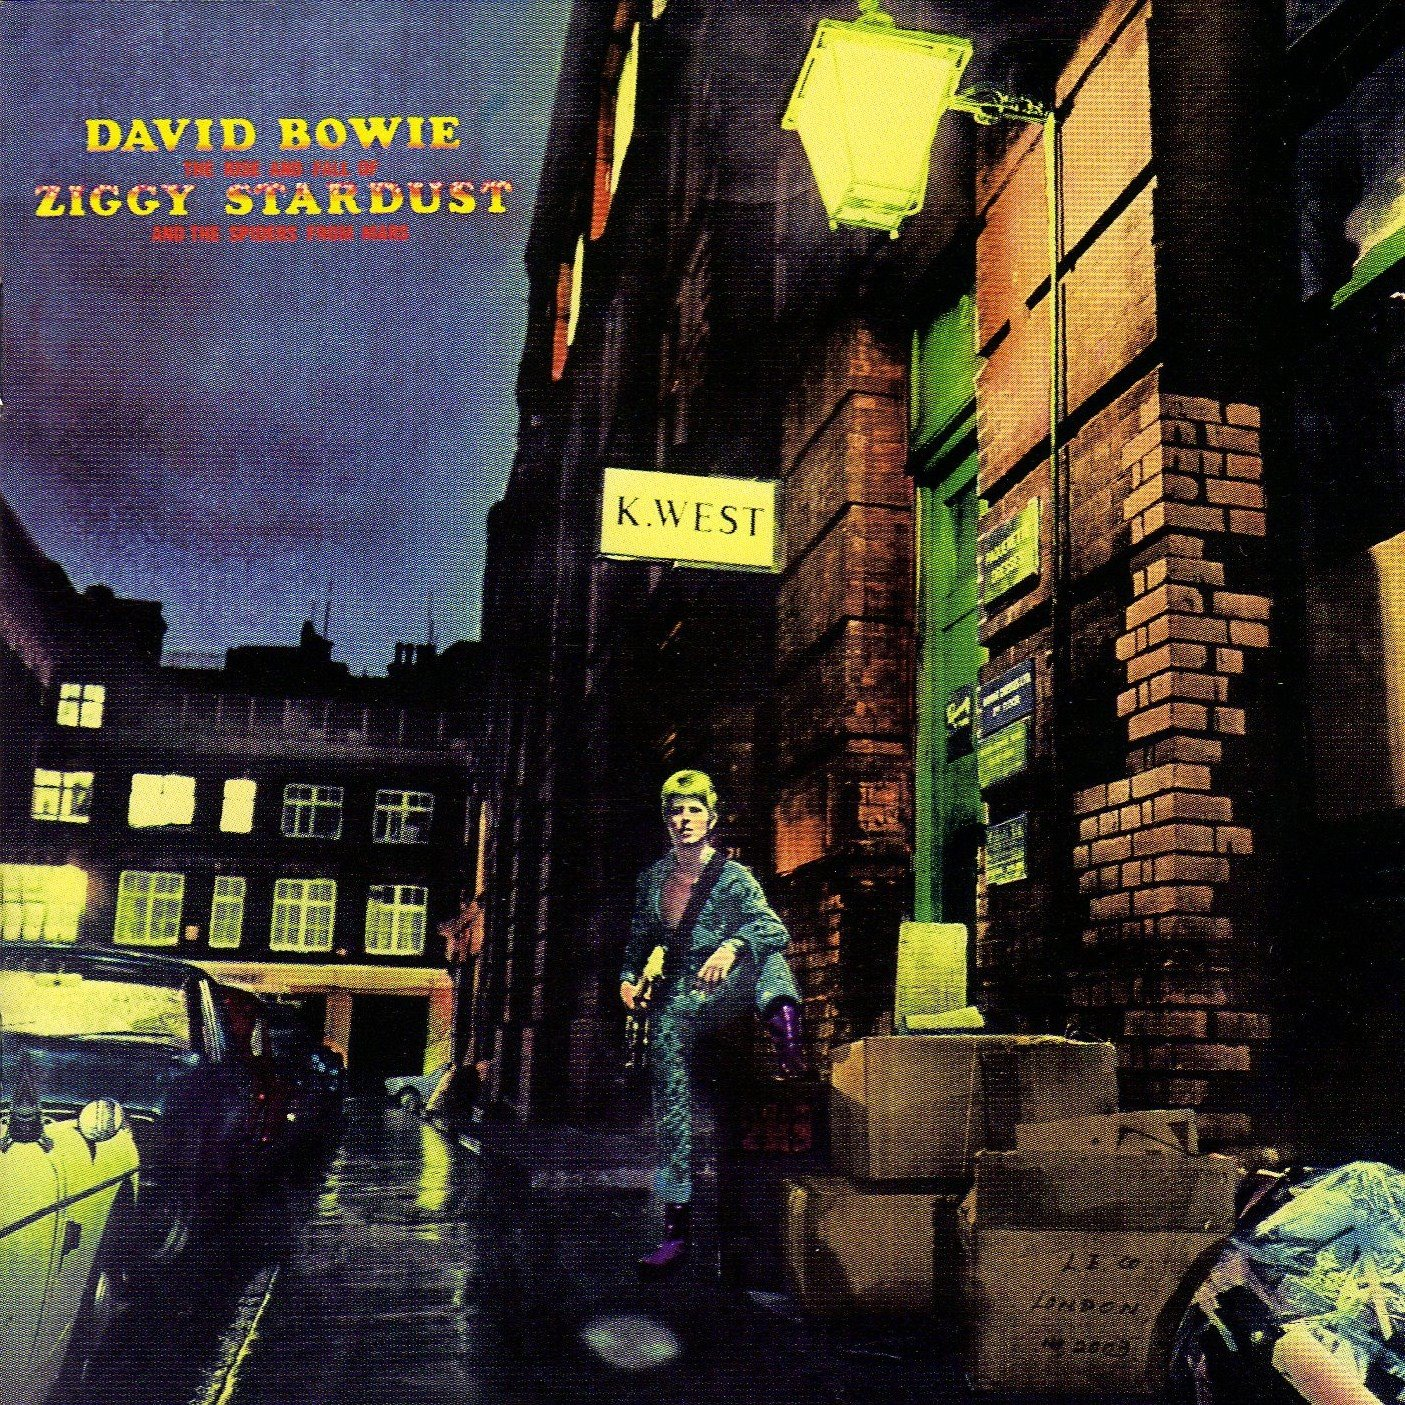 The rise and fall of Ziggy Stardust and the spiders from Mars (30th anniversary edition)